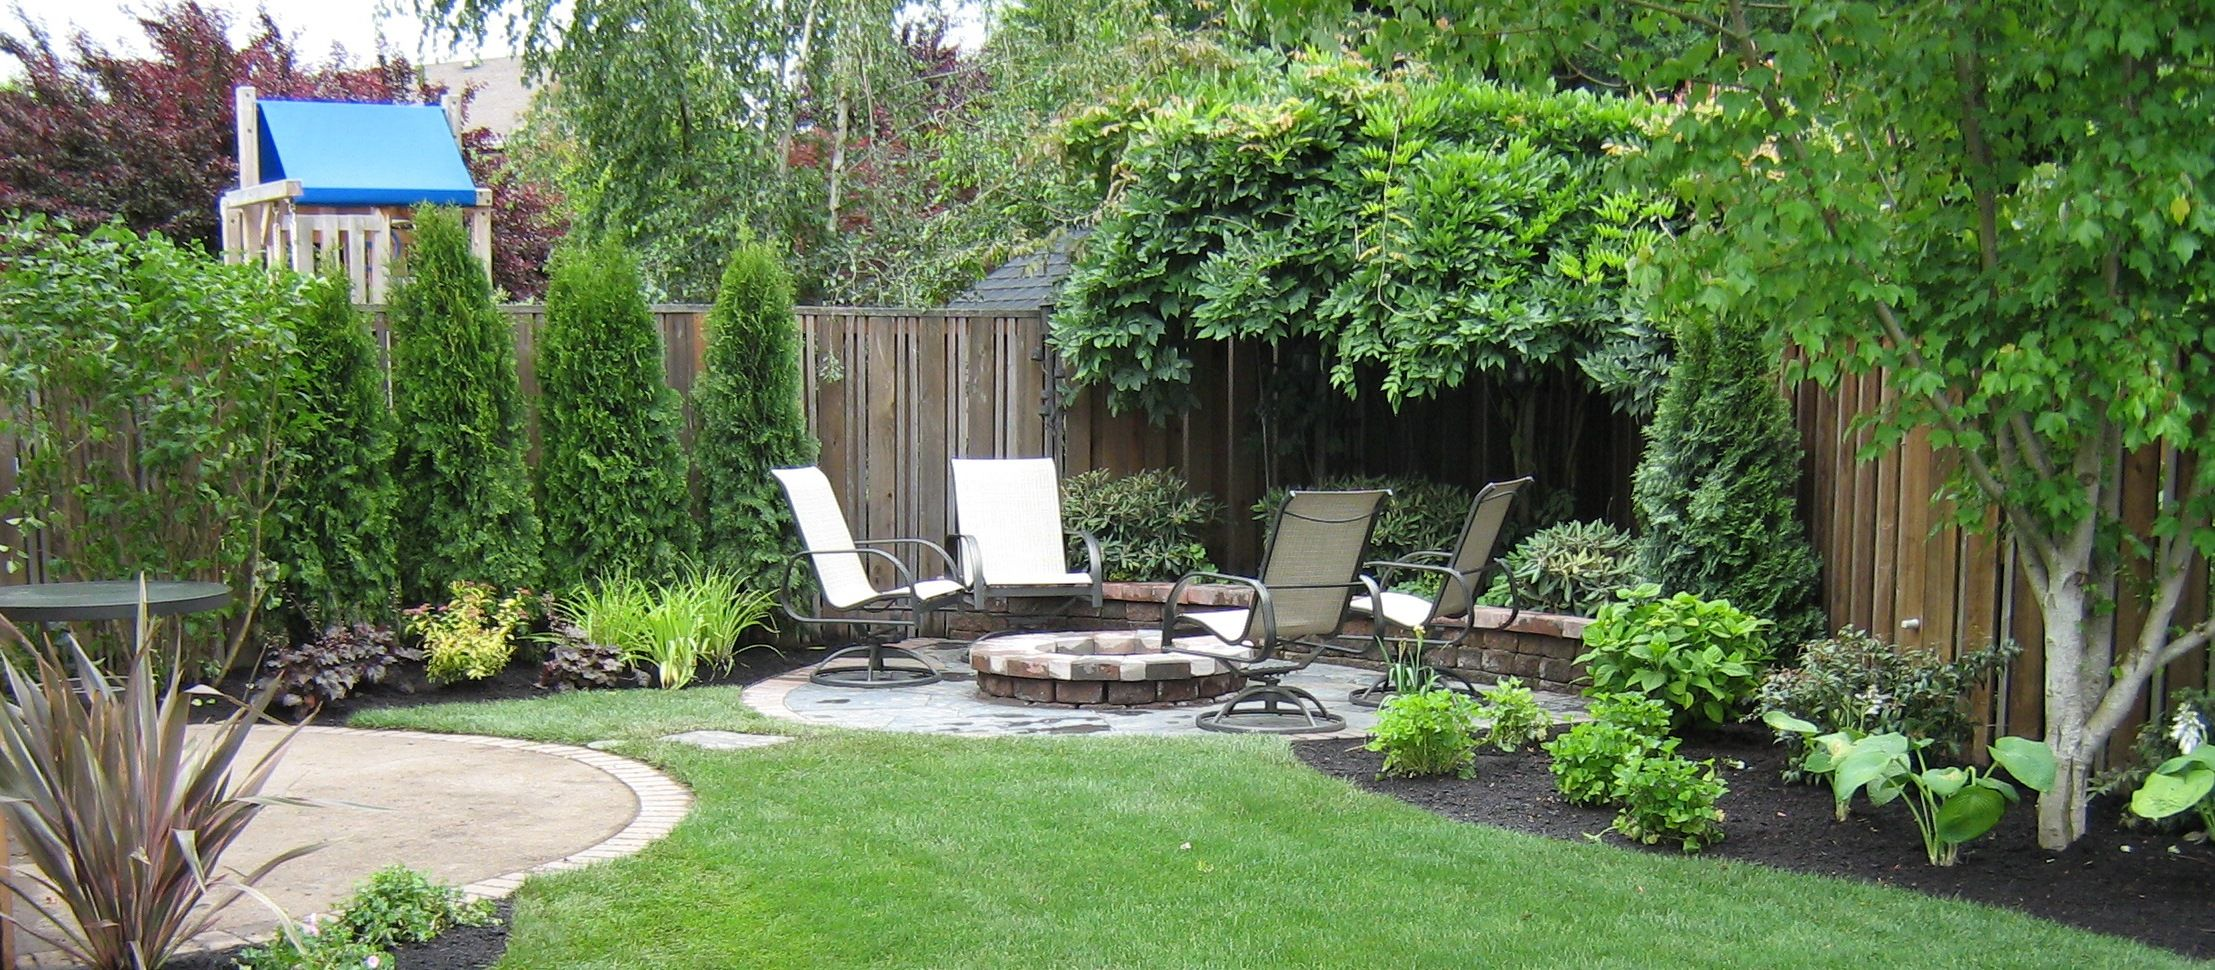 Small backyard landscaping ideas photos garden design for Small yard landscaping ideas